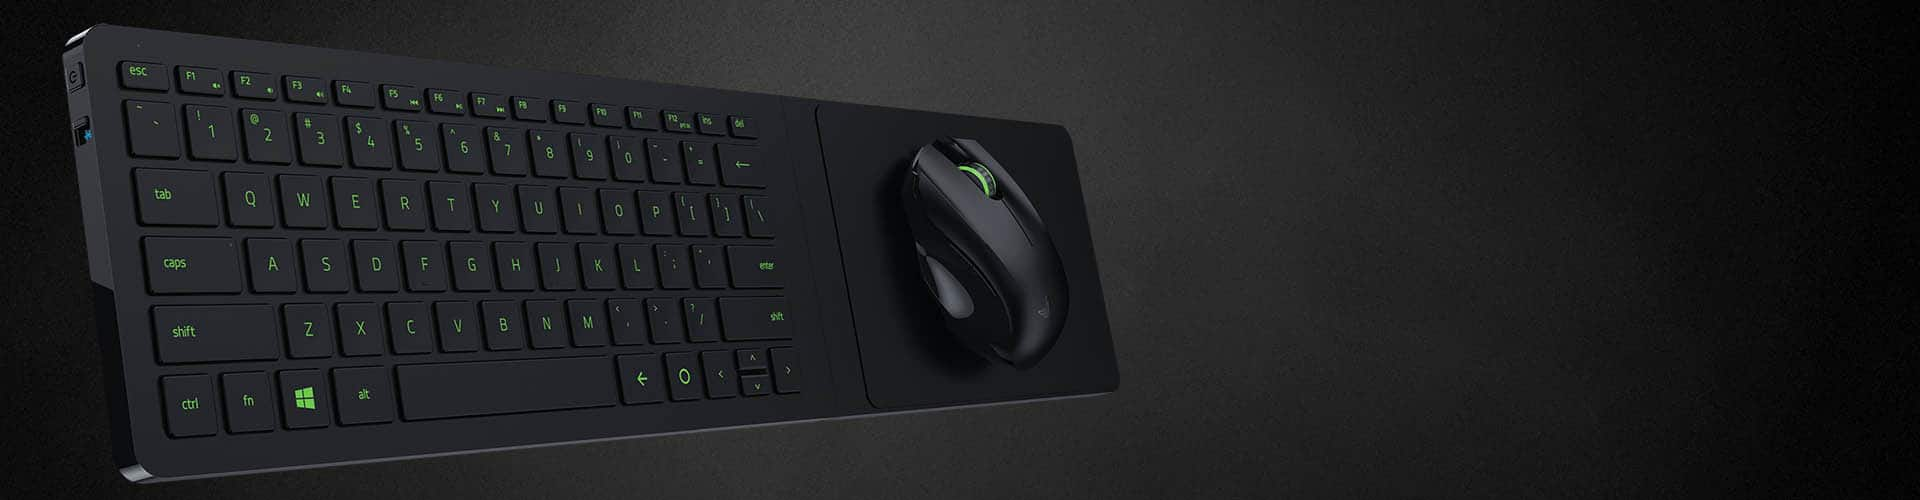 Best Wireless Keyboard and Mouse Combo 2019 – The Ultimate Guide